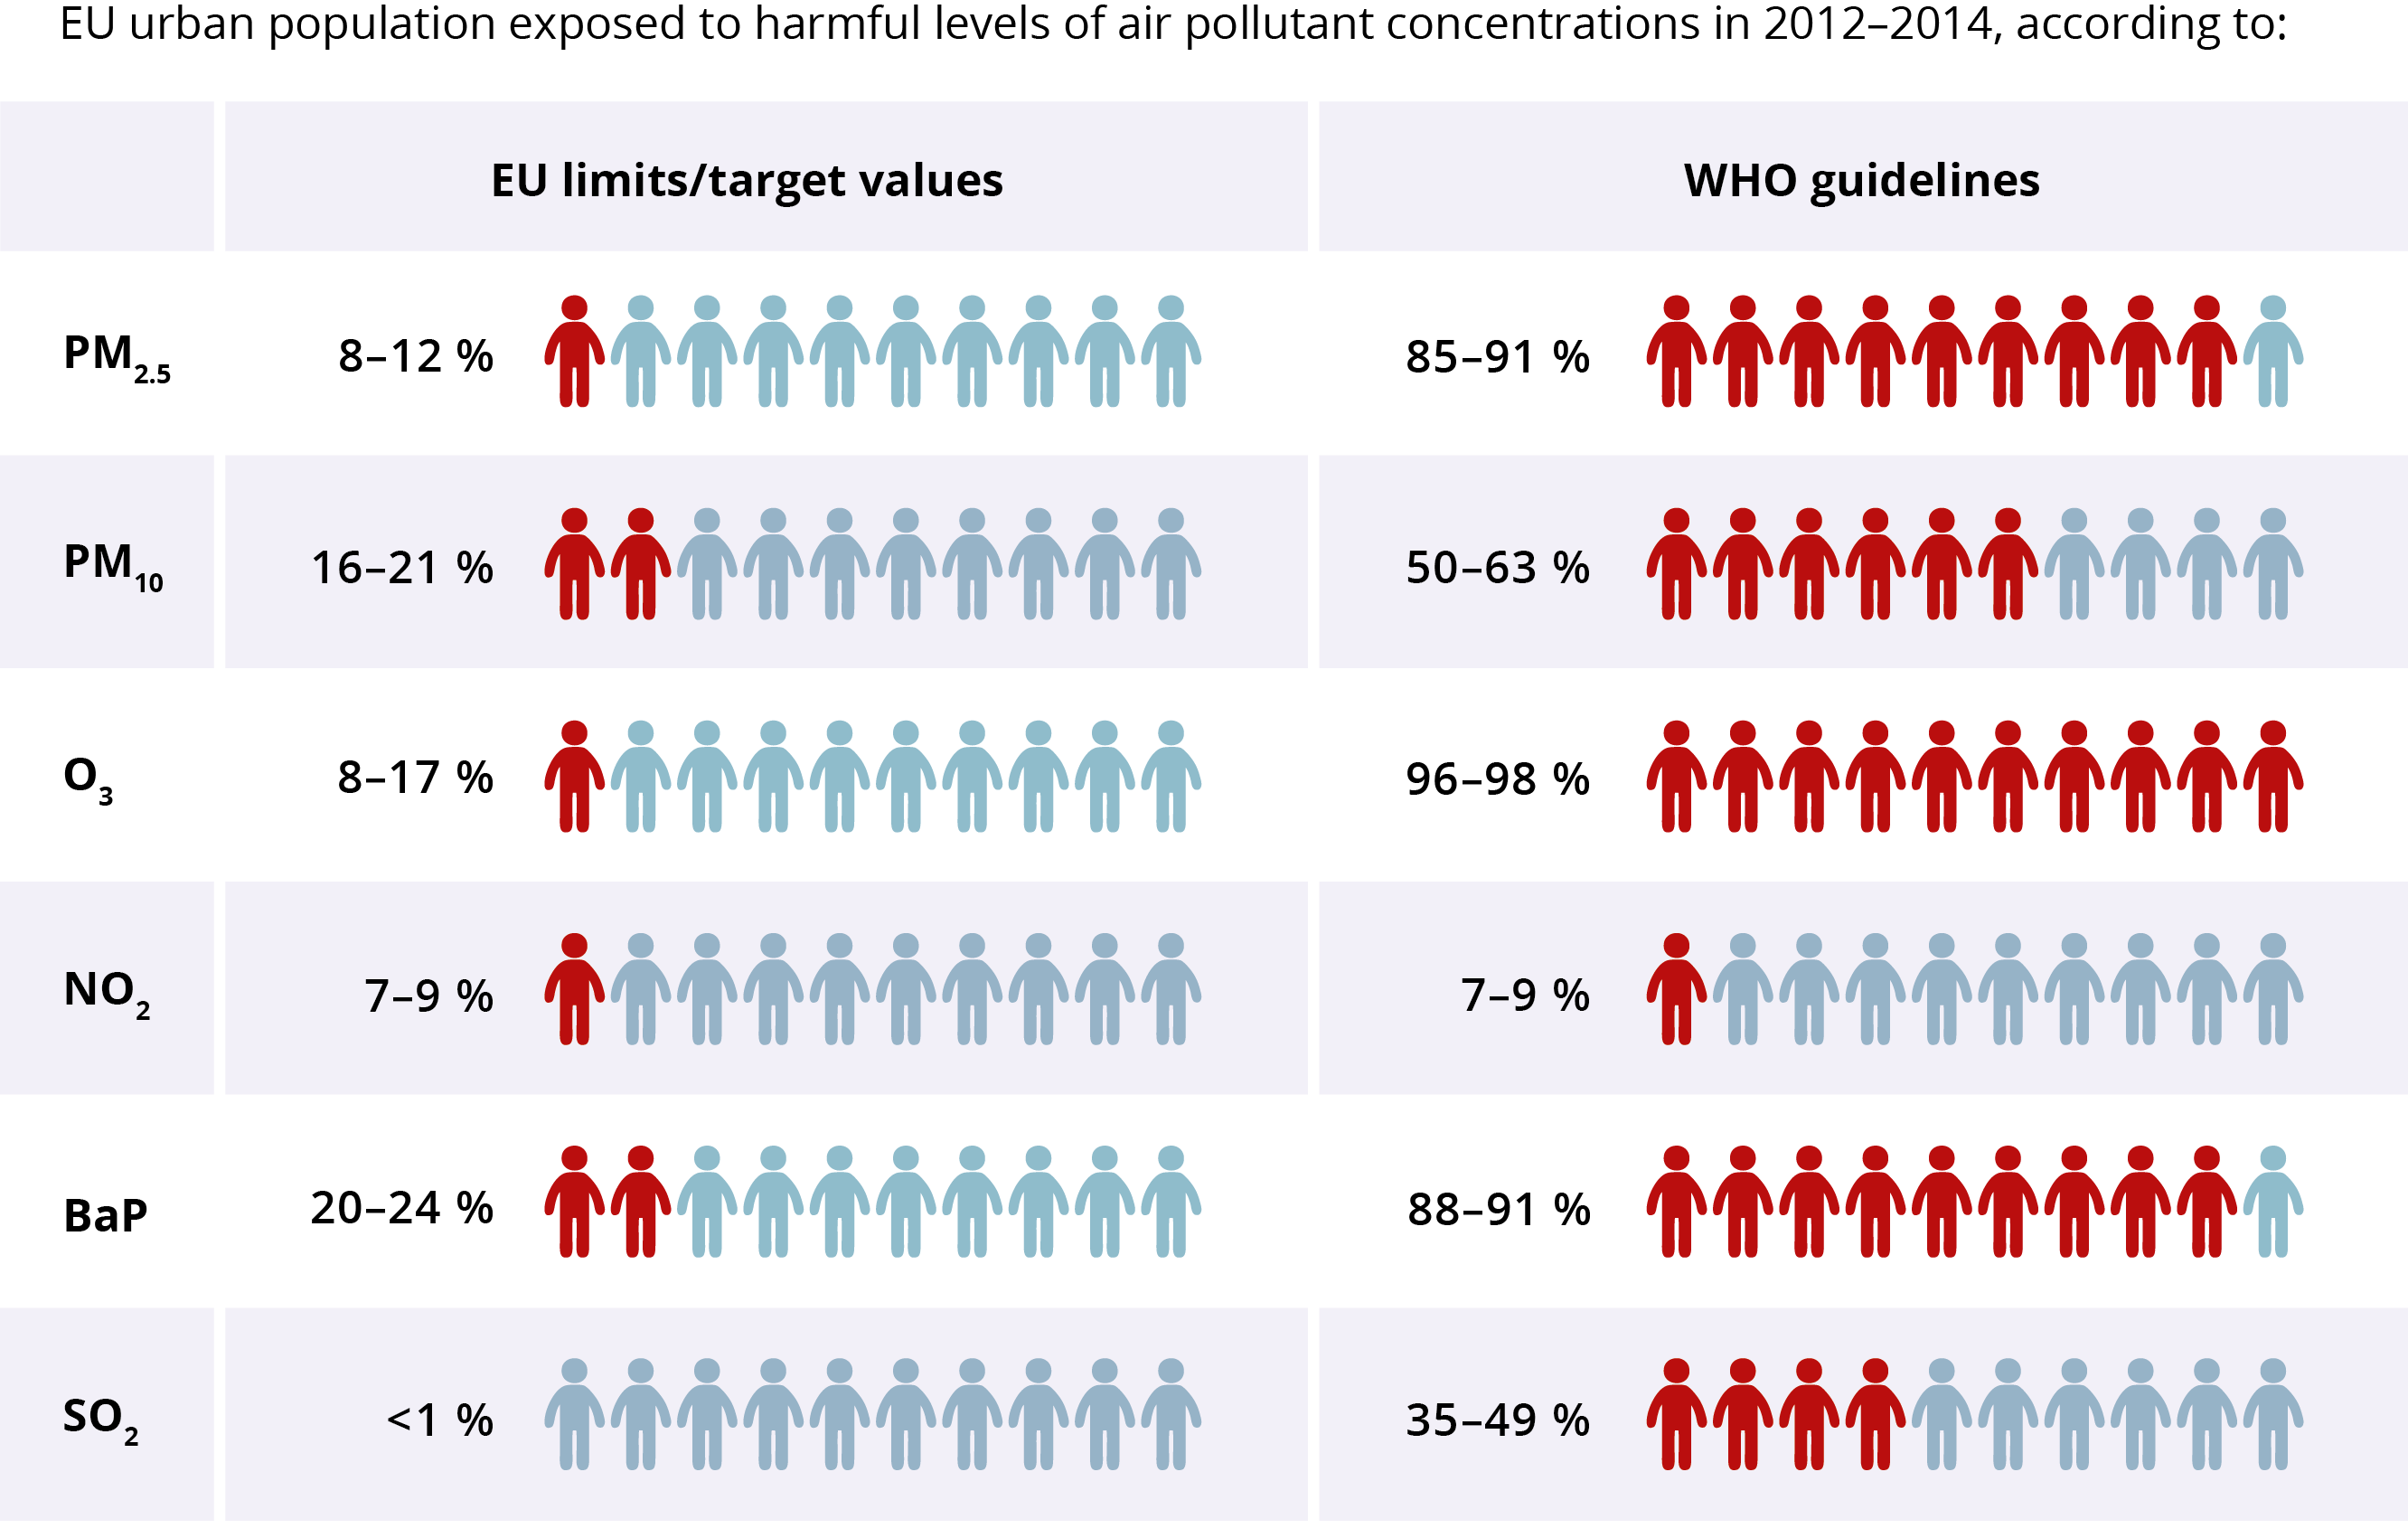 Air pollution has significant impacts on the health of Europeans, particularly in urban areas, according to a new report from the European Environment Agency (EEA). While air quality is slowly improving, air pollution remains the single largest environmental health hazard in Europe, resulting in a lower quality of life due to illnesses and an estimated 467 000 premature deaths per year.